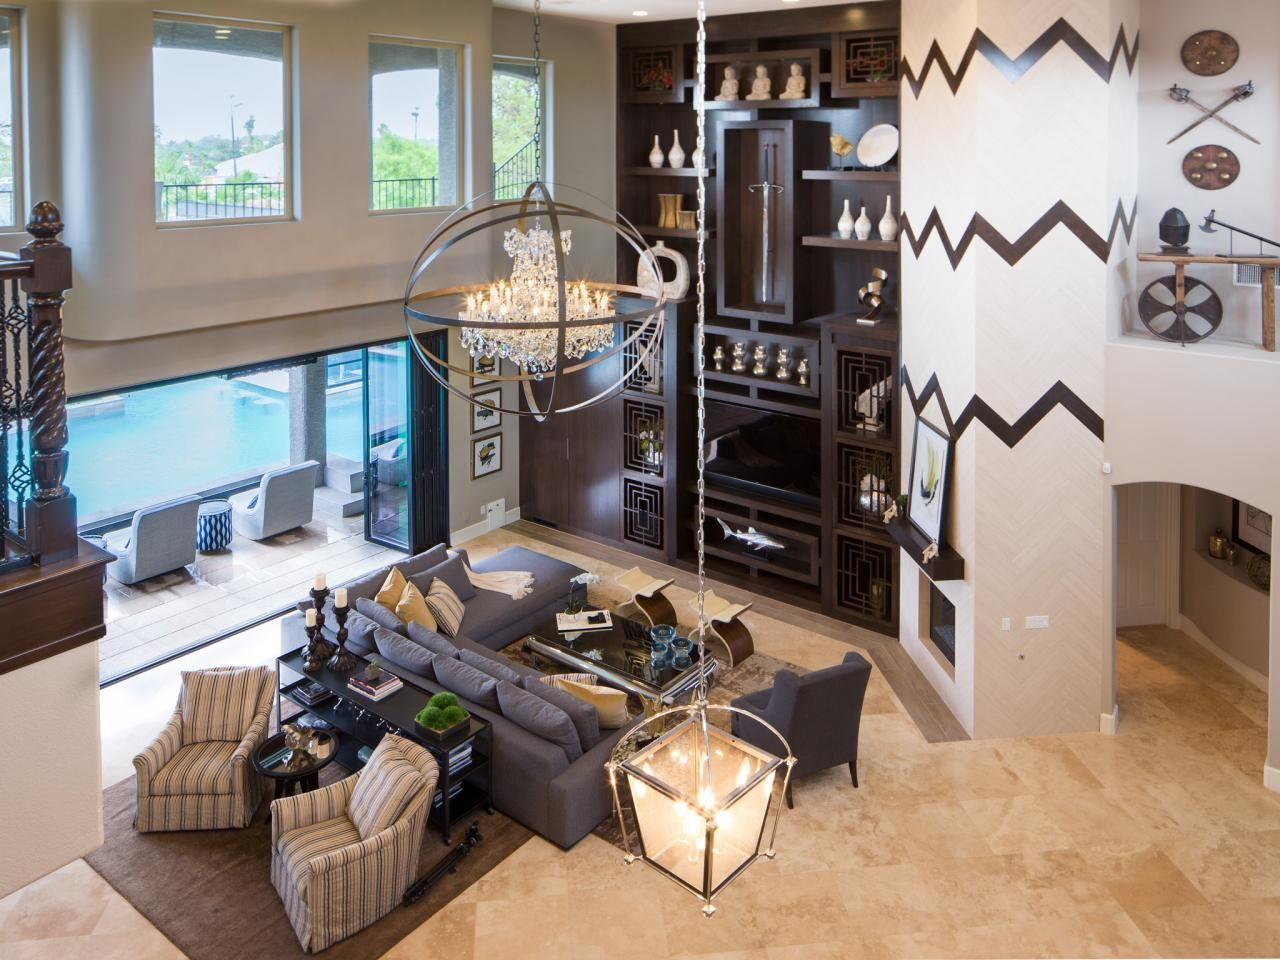 Before And After The Property Brothers Las Vegas Home Property Brothers At Home Property Brothers Great Rooms